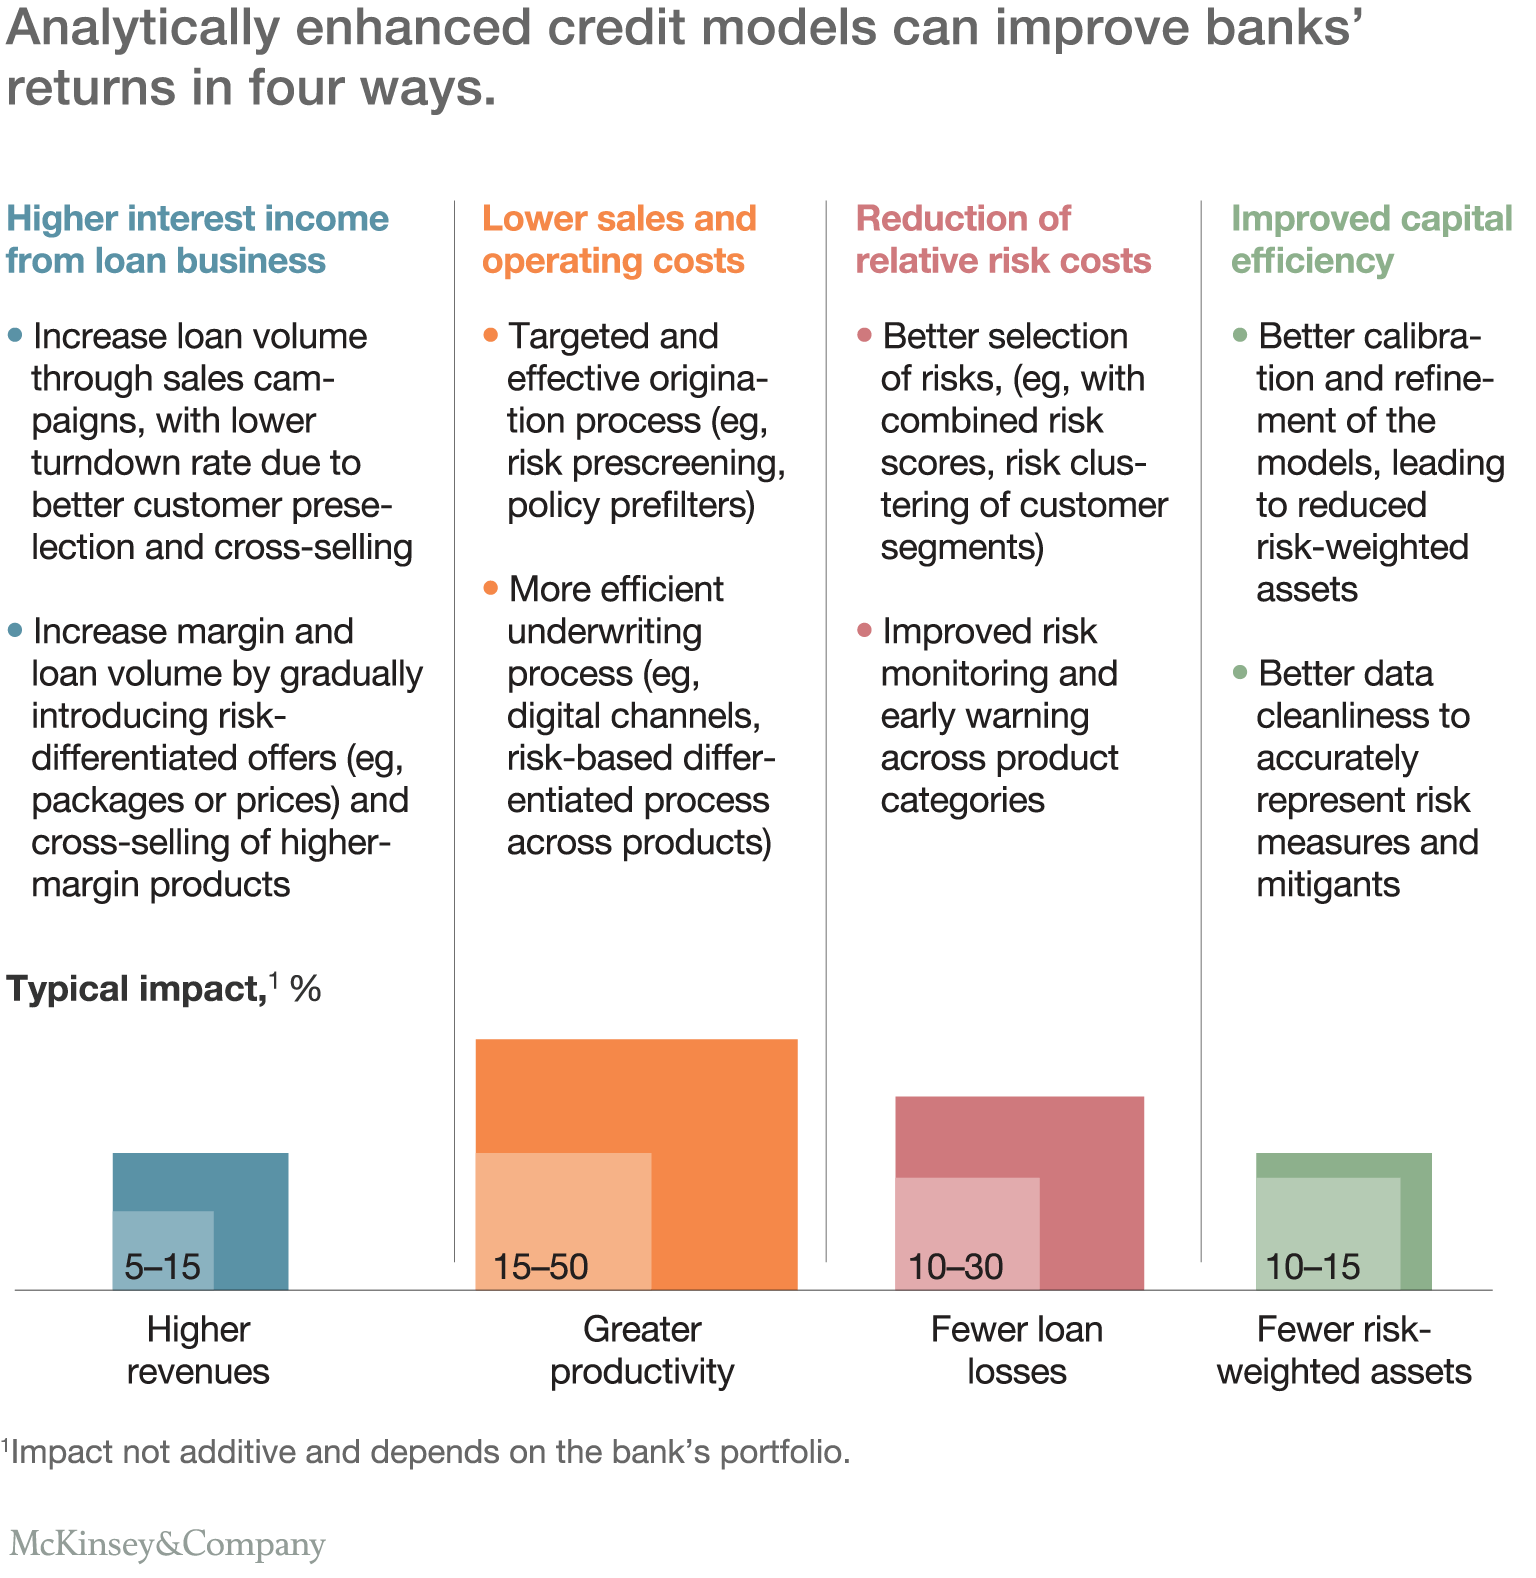 Analytically enhanced credit models can improve banks' returns in four ways.